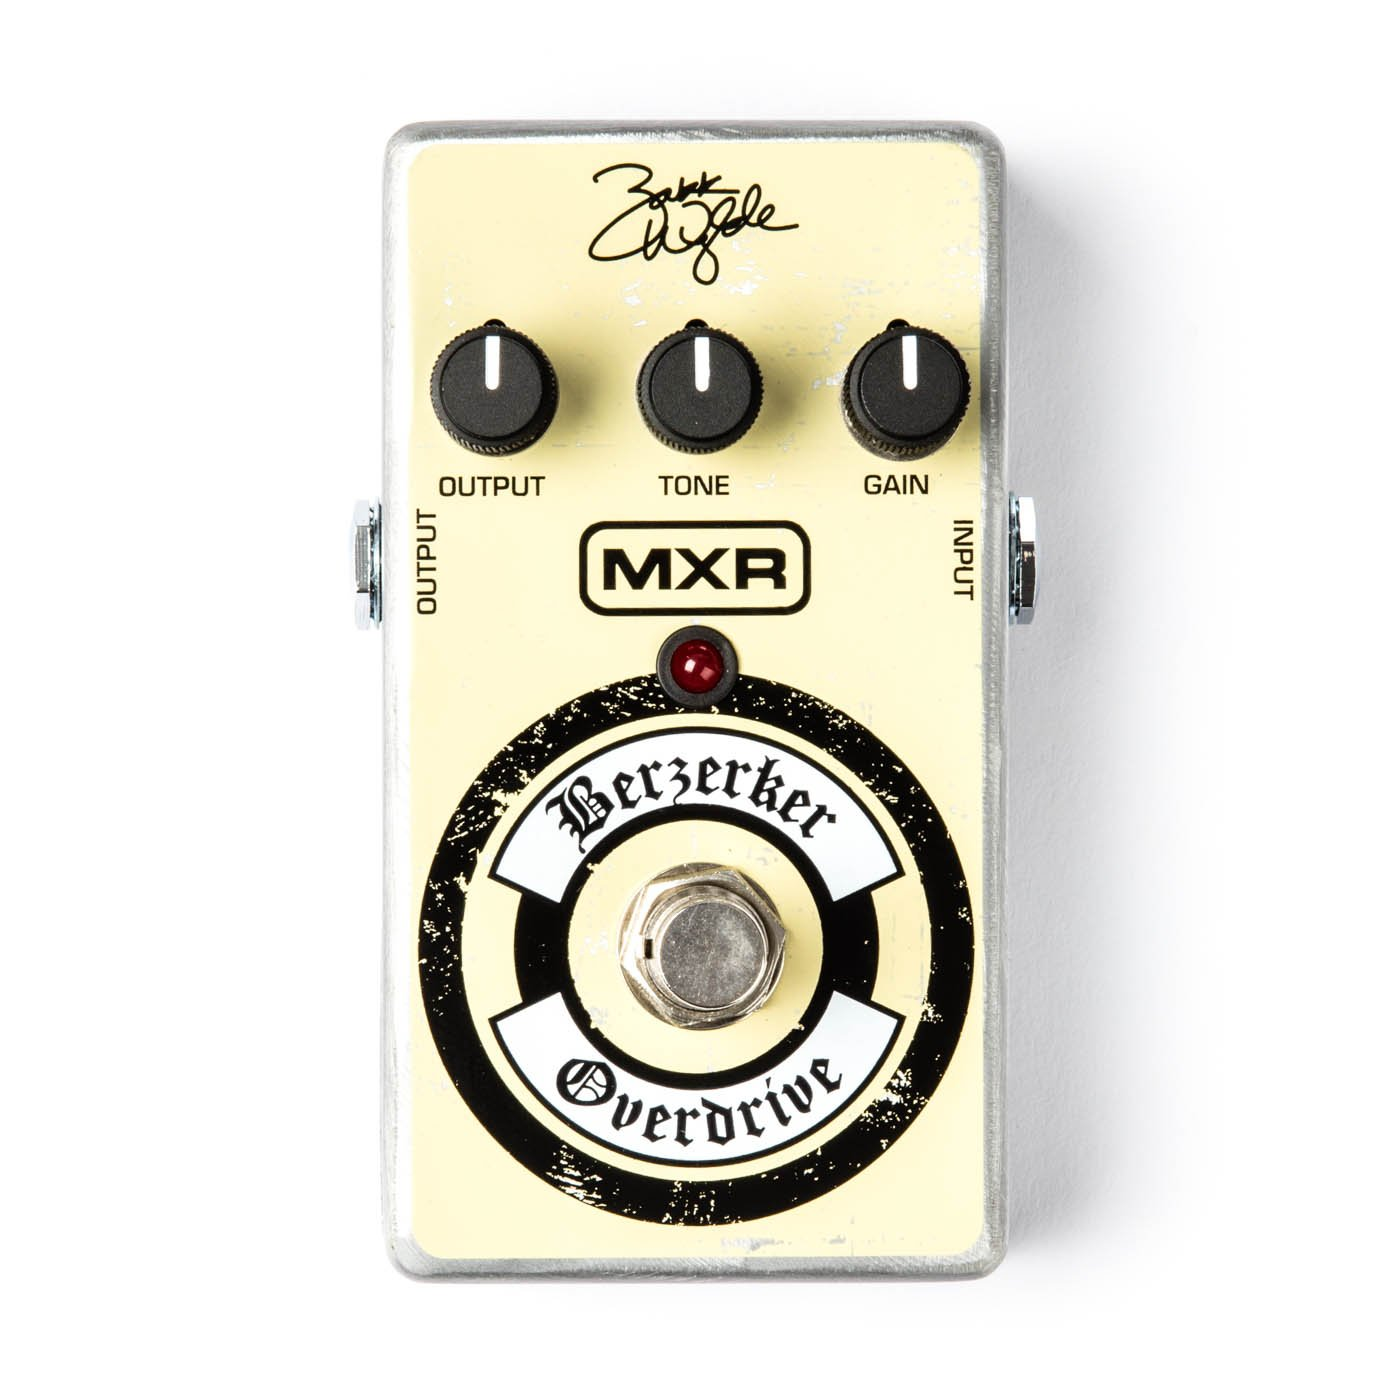 Guitar Effect Pedal, Overdrive